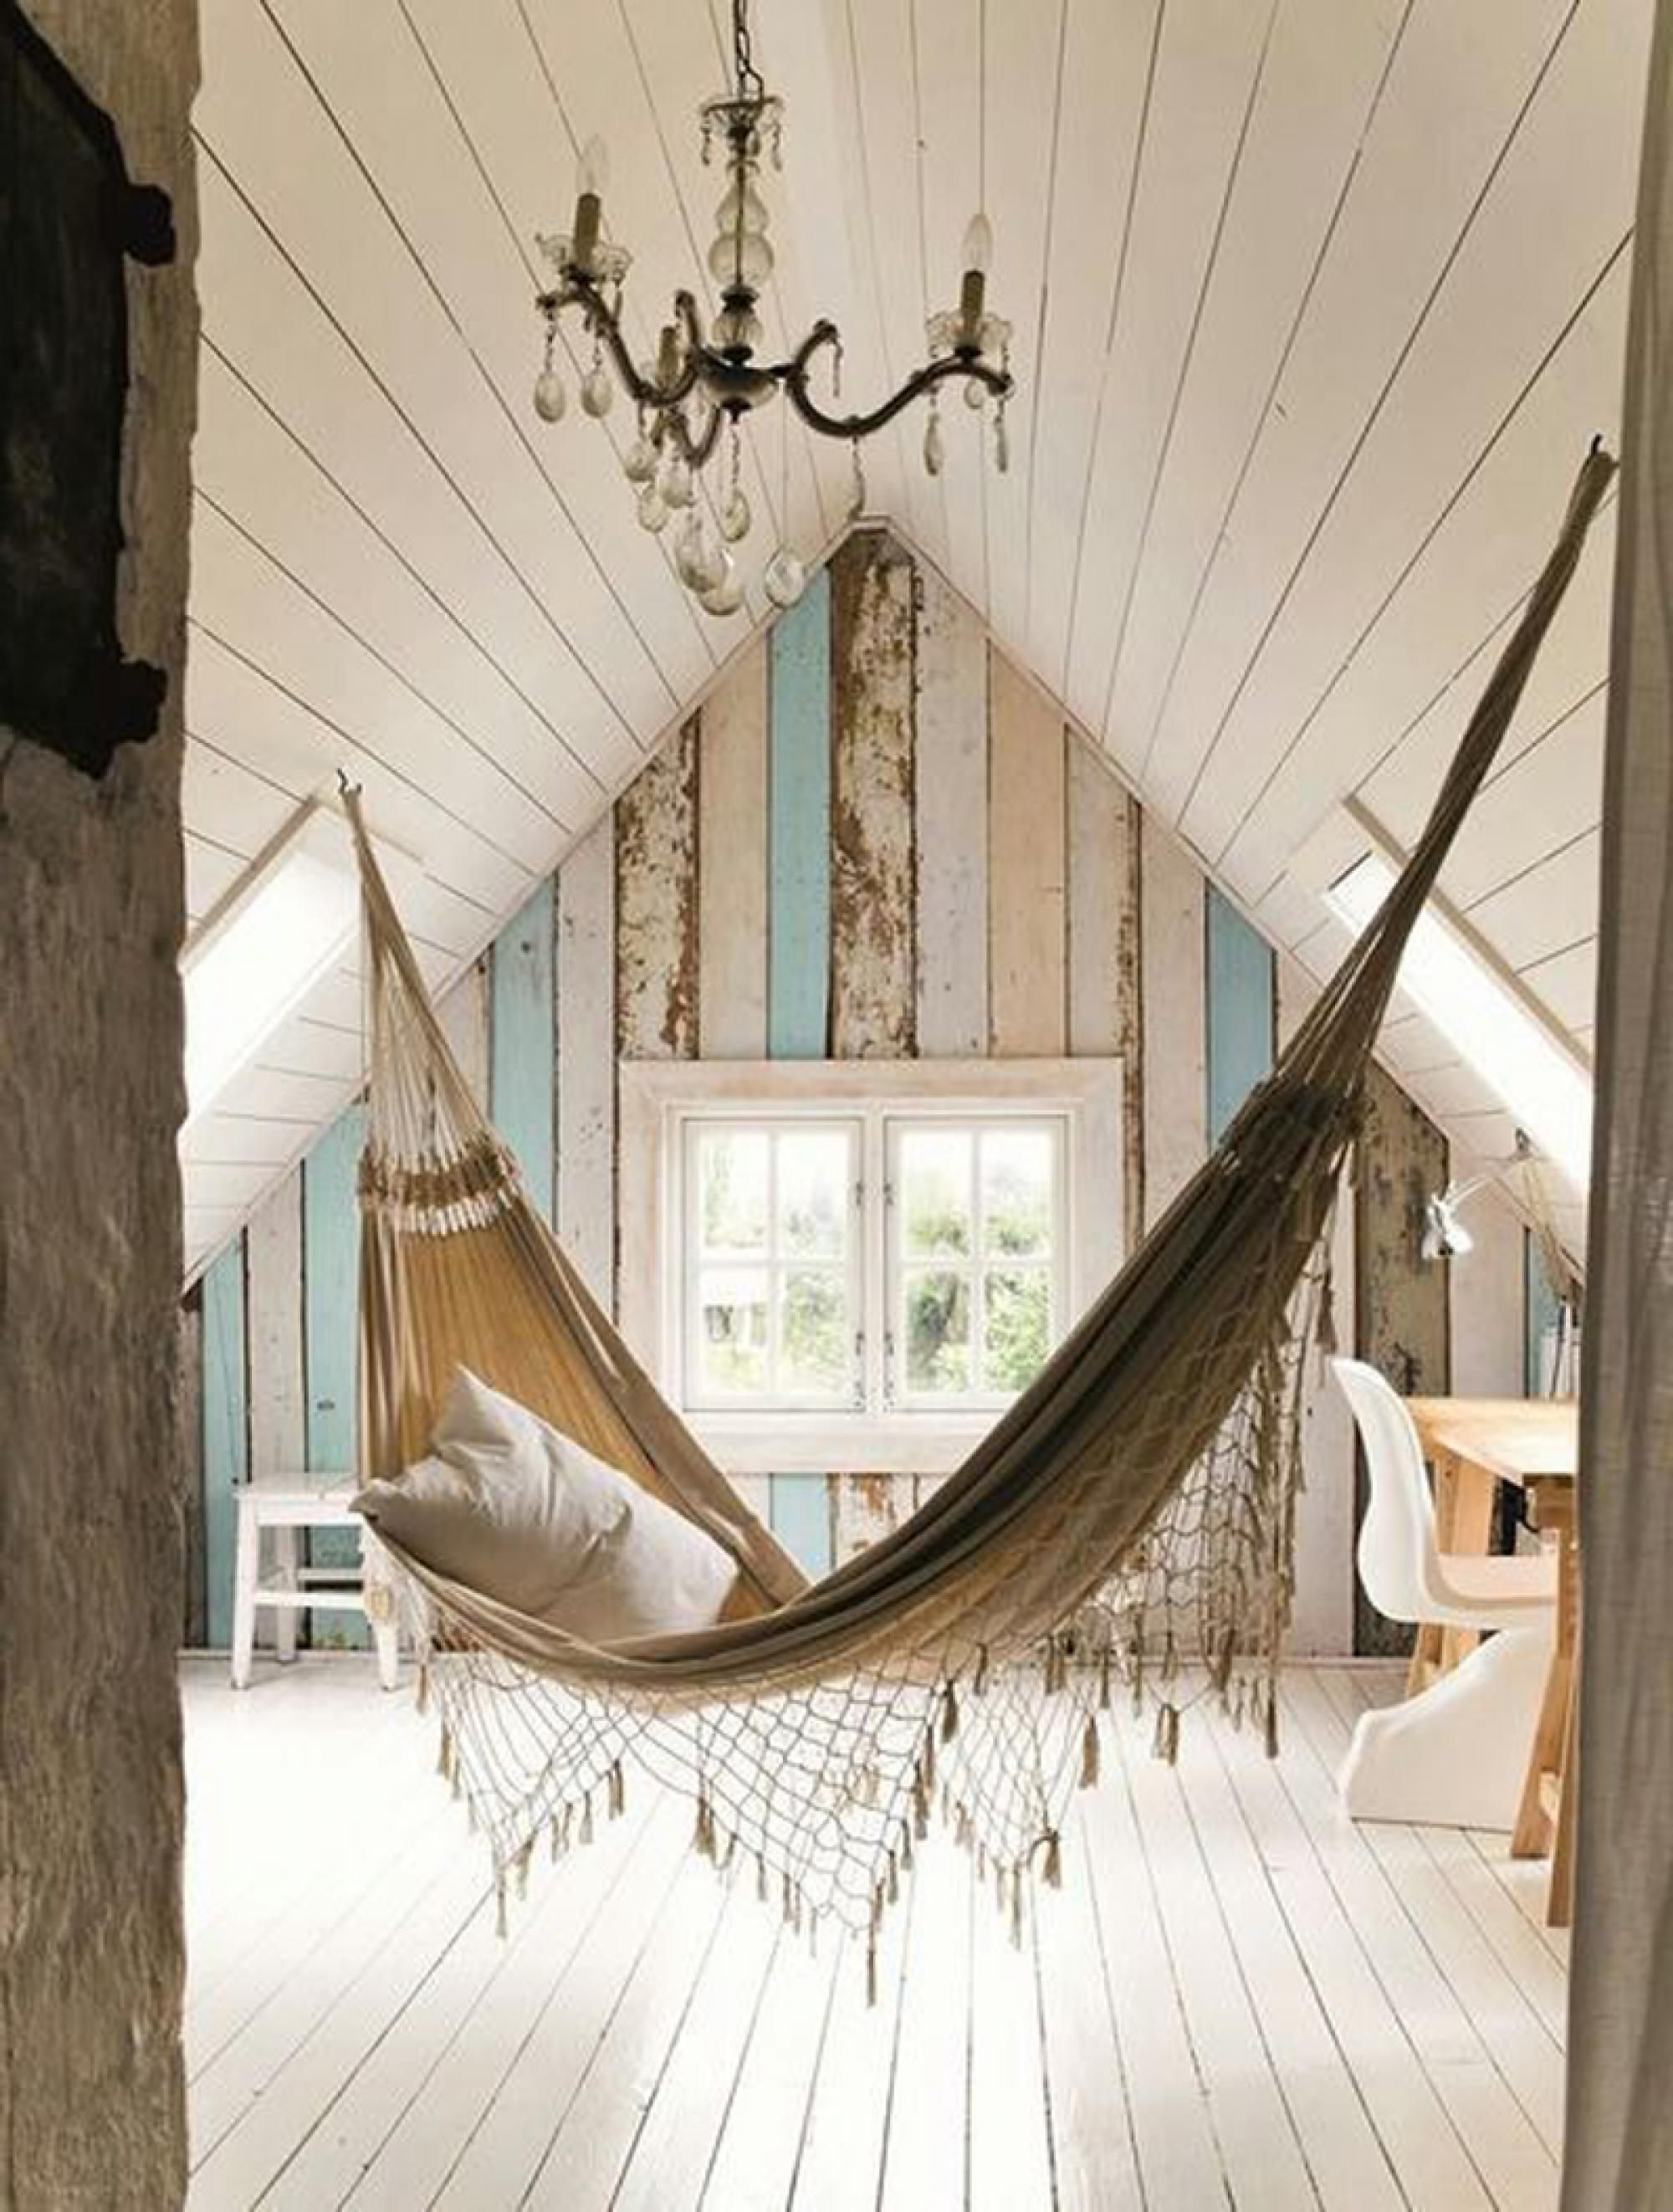 Awesome 19 Creative Room Decorating Ideas With Hammocks